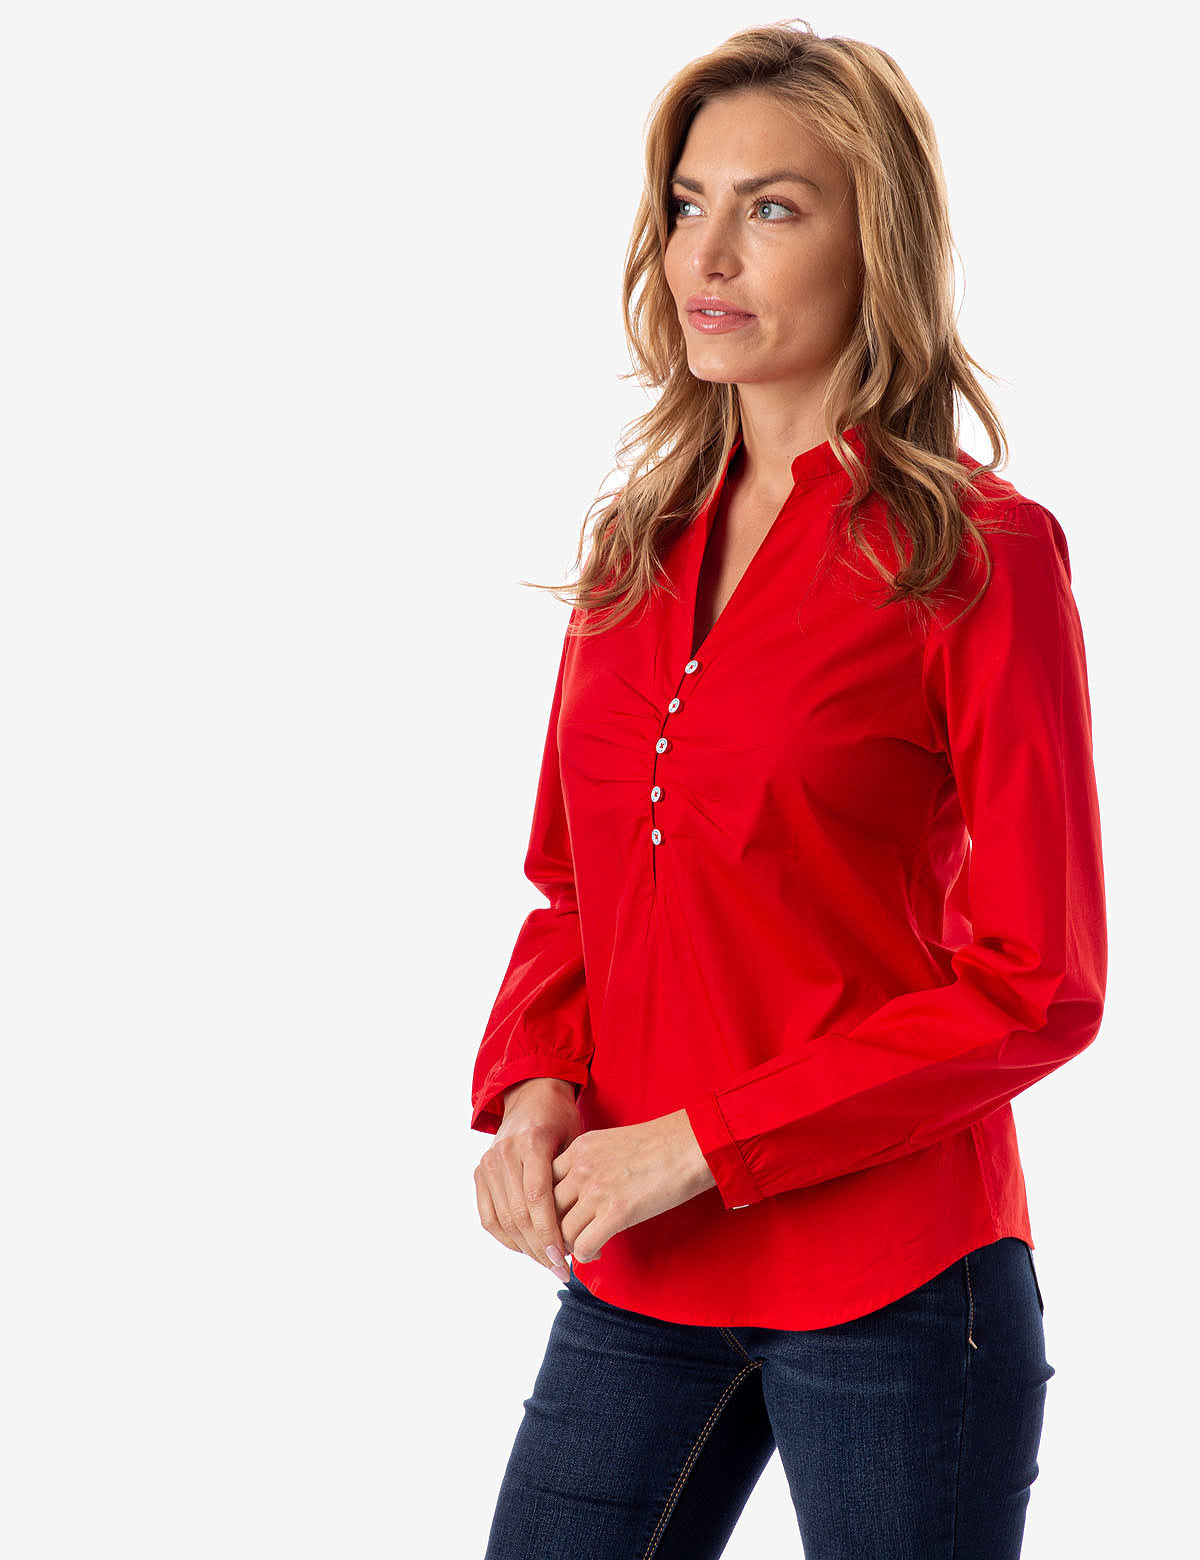 RUCHED BUTTON FRONT SHIRT - U.S. Polo Assn.